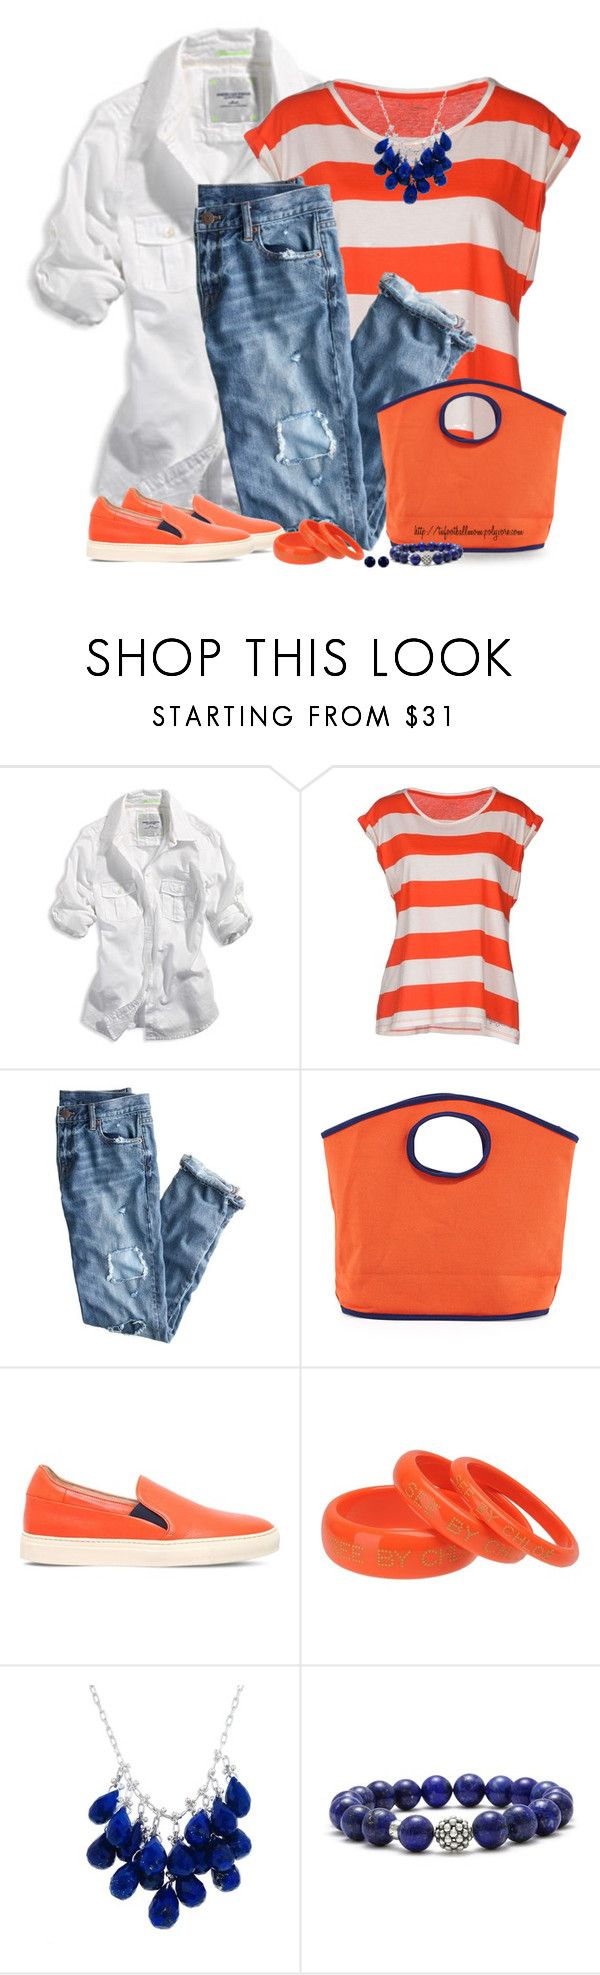 """Orange purse"" by tufootballmom ❤ liked on Polyvore featuring American Eagle Outfitters, Pepe Jeans London, J.Crew, Toss, Paul Smith, See by Chloé, Ten Thousand Things, Lagos and Reeds Jewelers"